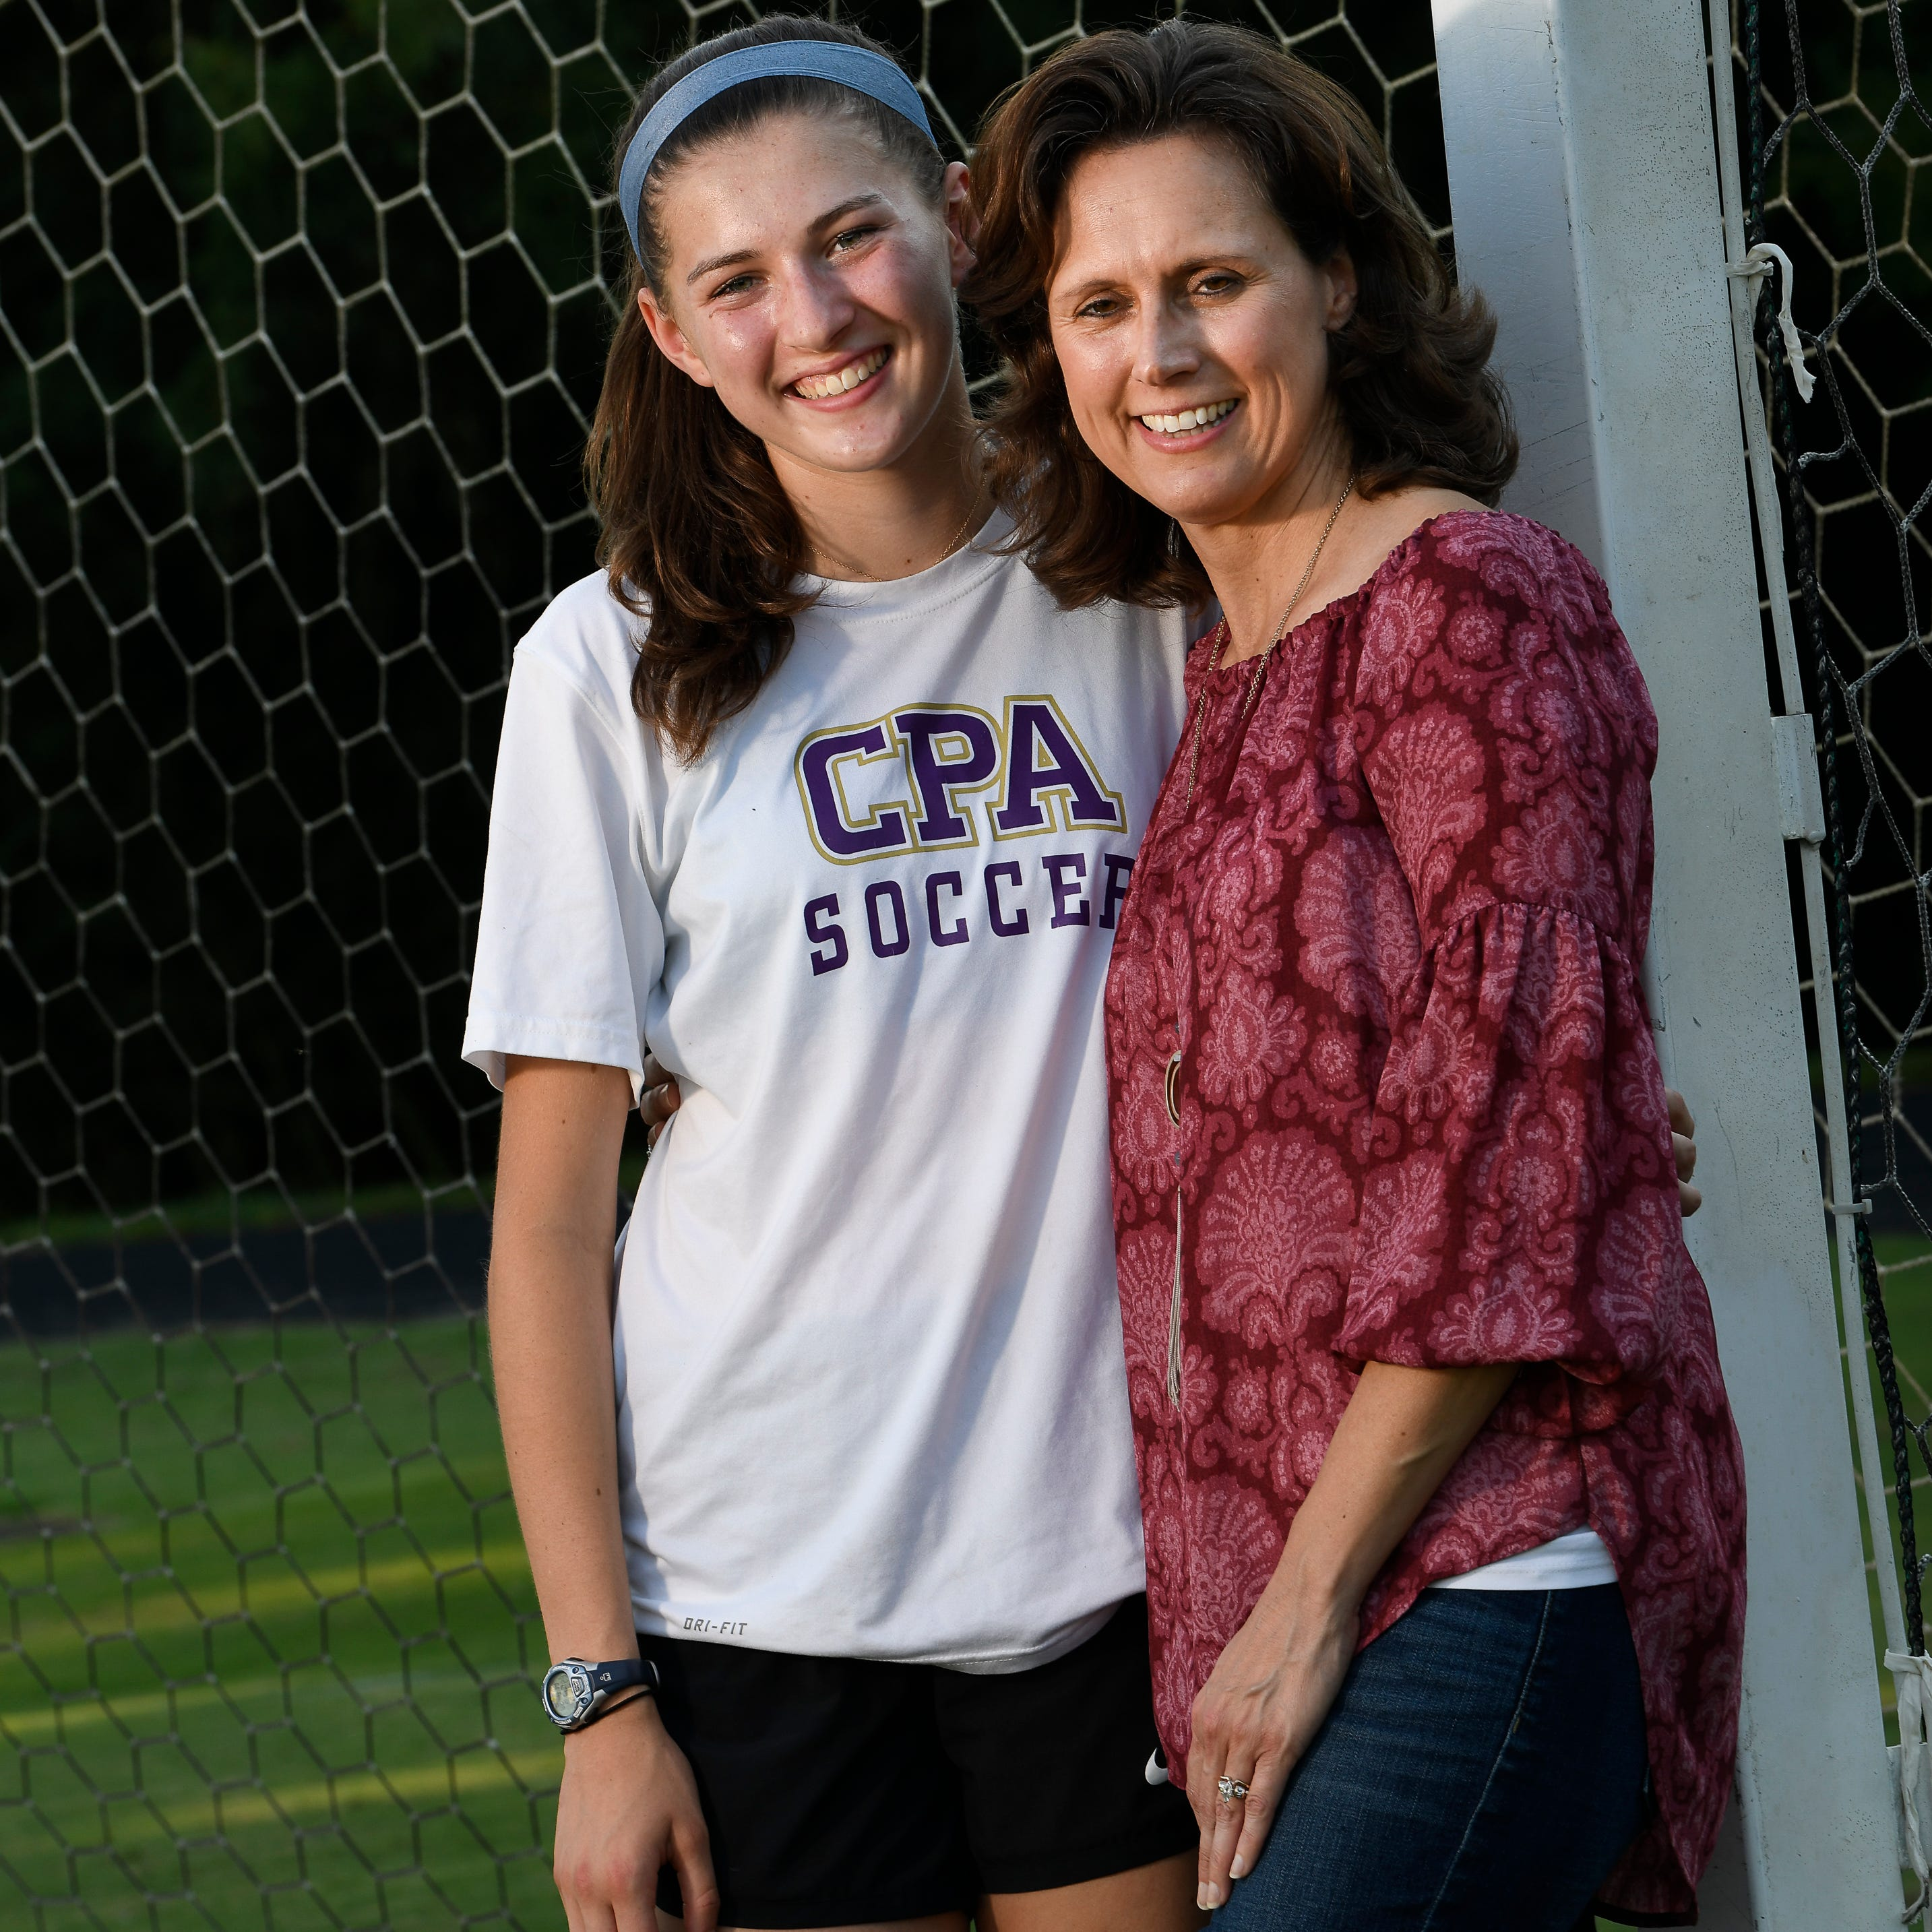 CPA star's mom fighting breast cancer with faith and 'a smile in the midst of tears'